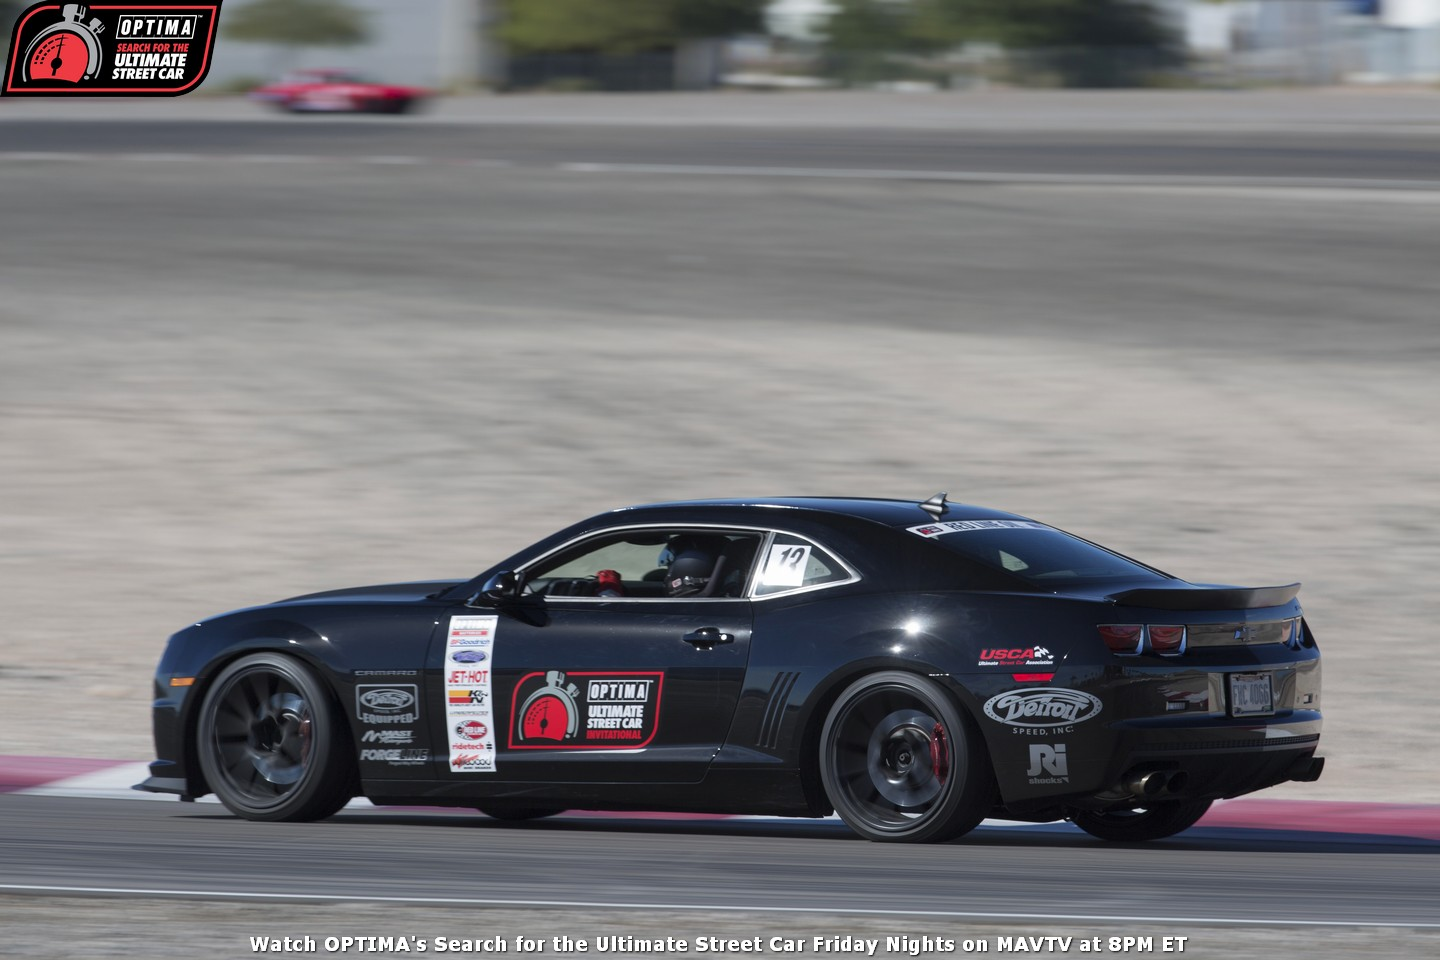 p-Brian-Johnson-2013-Chevrolet-Camaro-OPTIMA-Ultimate-Street-Car-Invitational-2014-BFGoodrich-Hot-Lap-Challenge_68.jpg